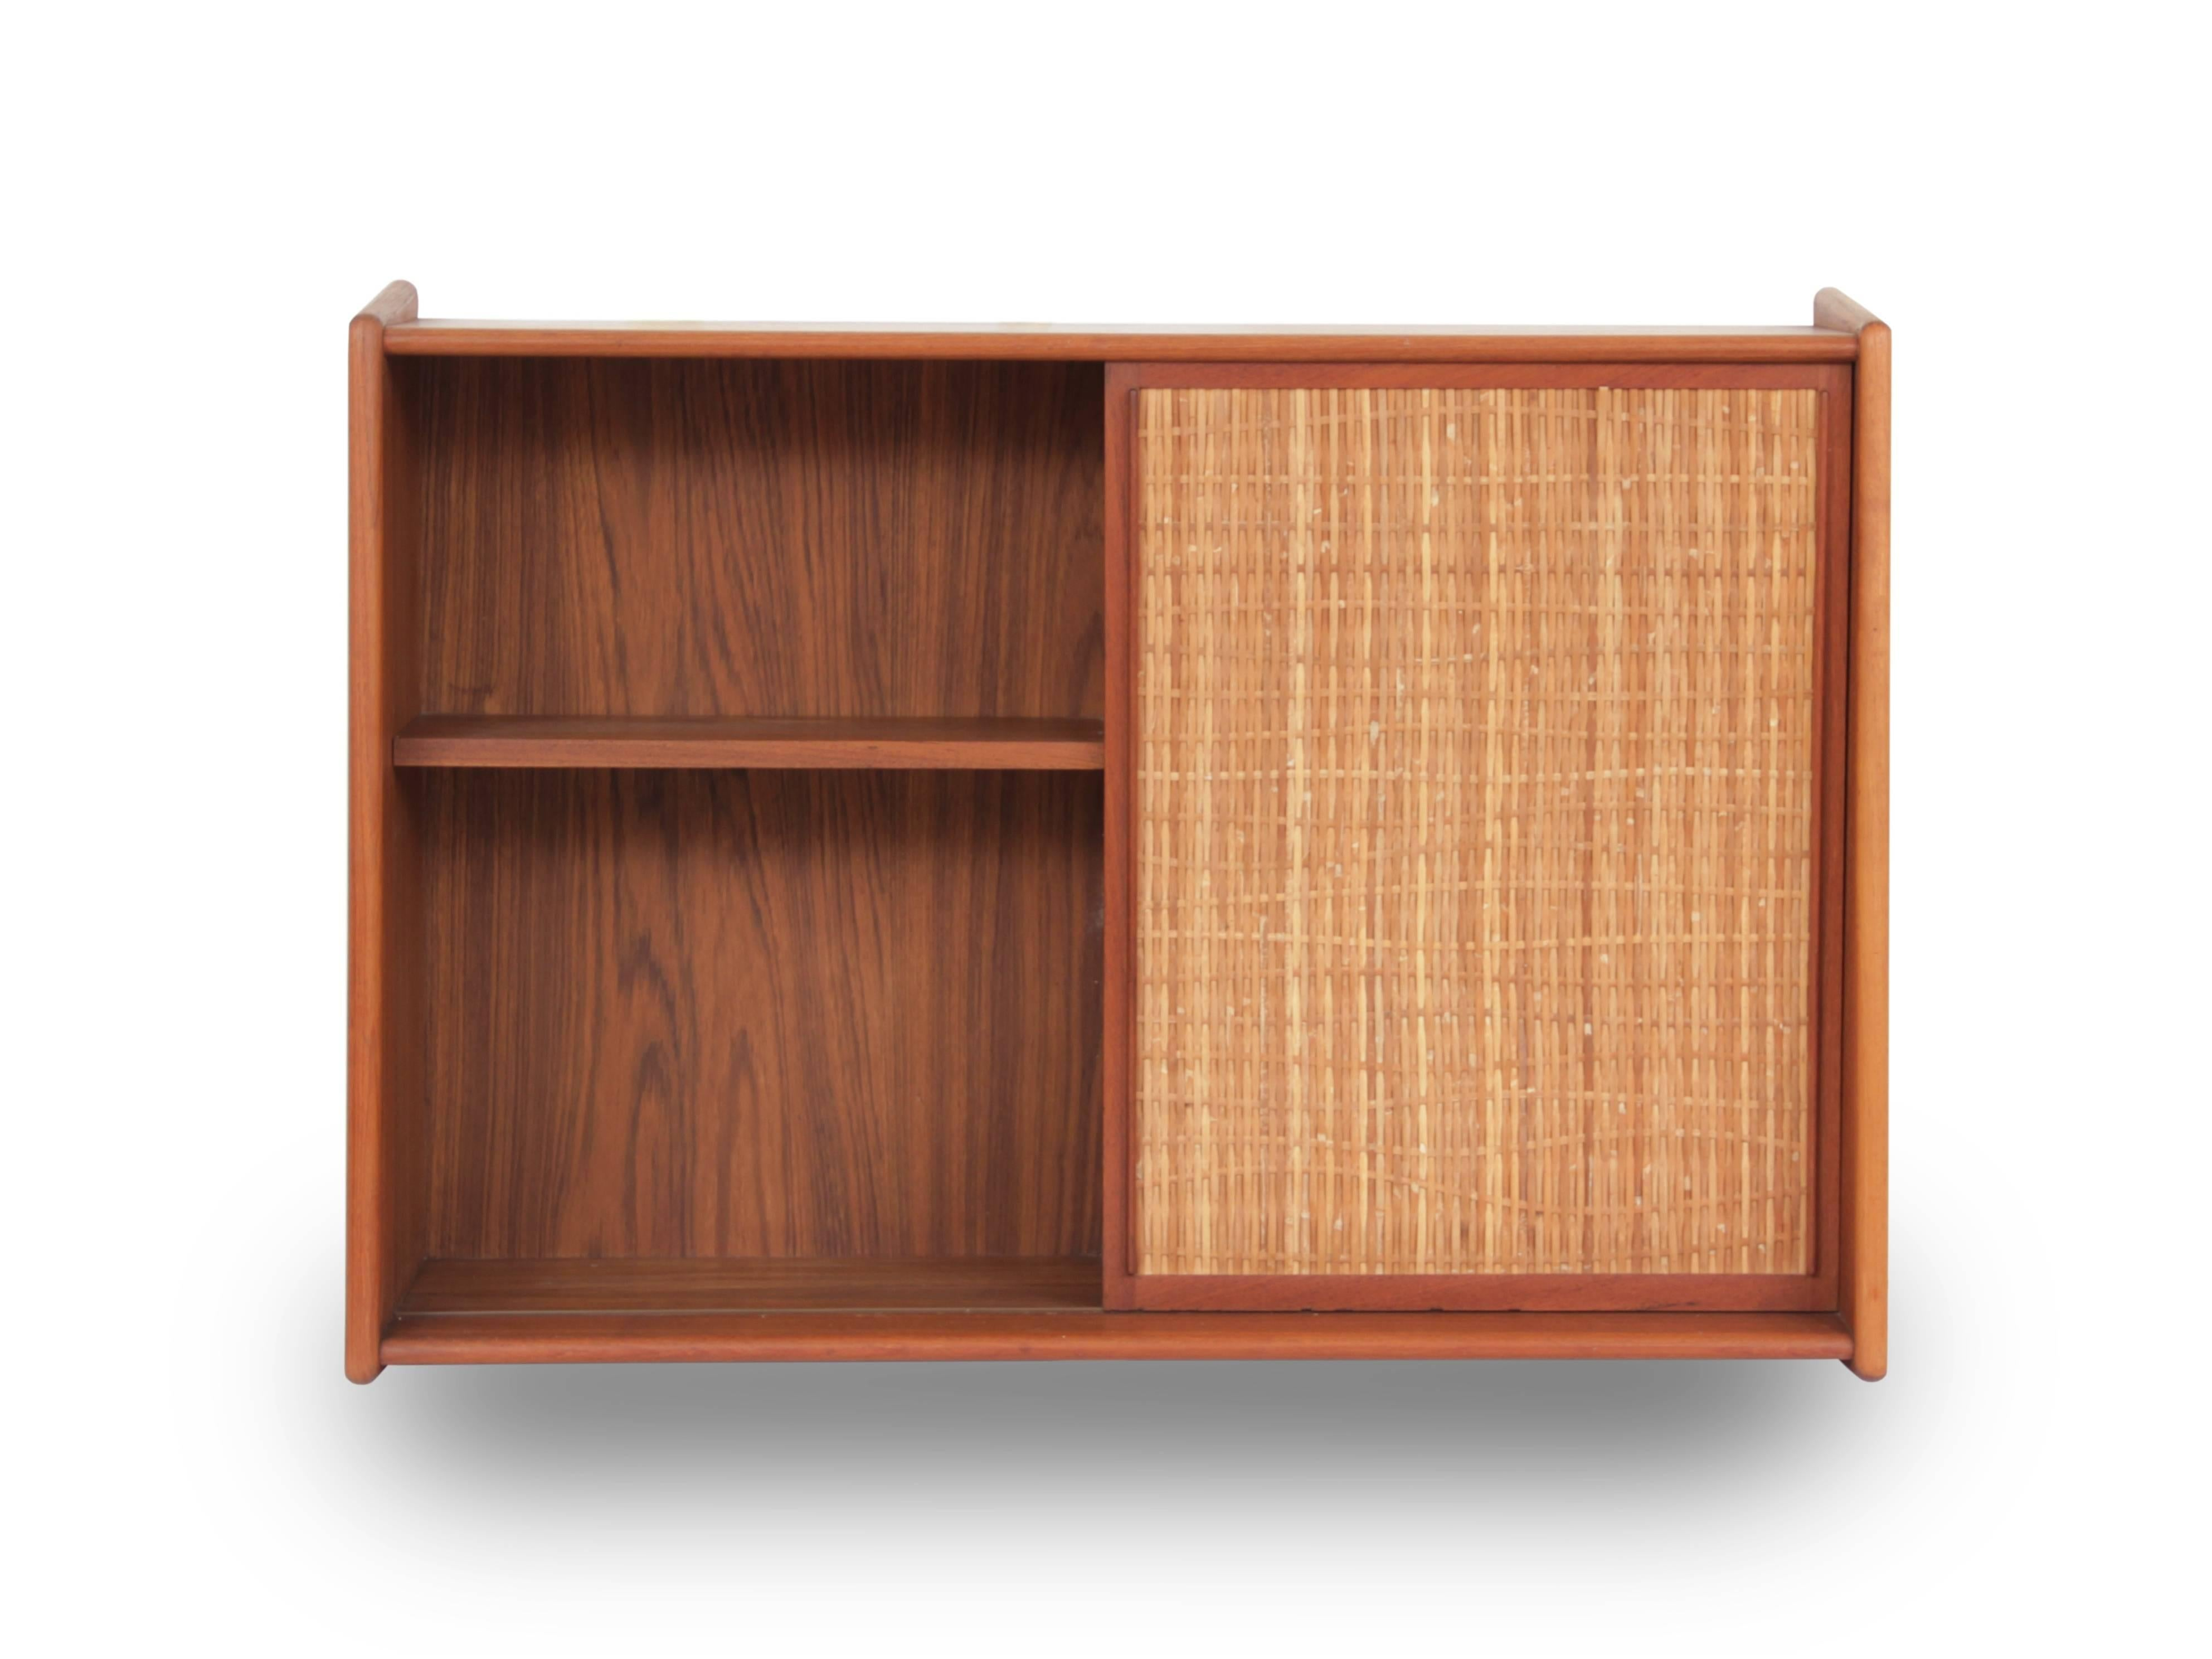 Mid Century Modern Scandinavian Bathroom Cabinet In Teak. This Small  Bathroom Cabinet Is Made